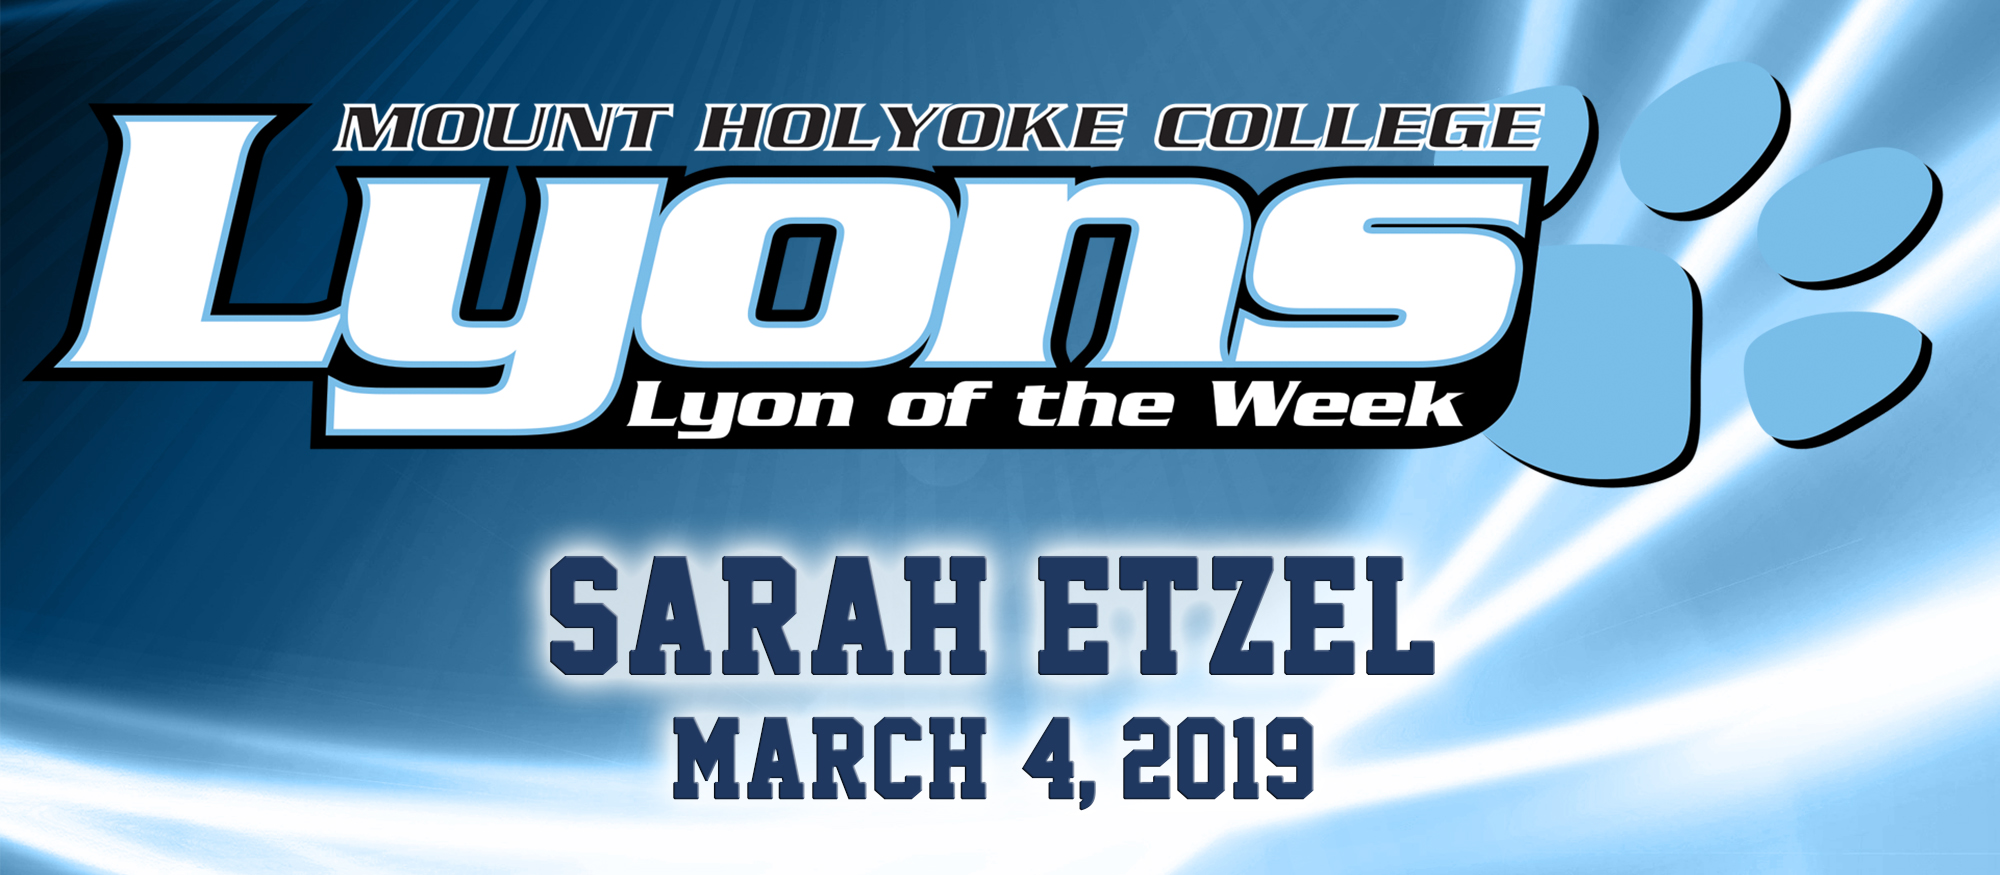 Photo for the Lyon of the Week for March 4, 2019, Riding's Sarah Etzel.